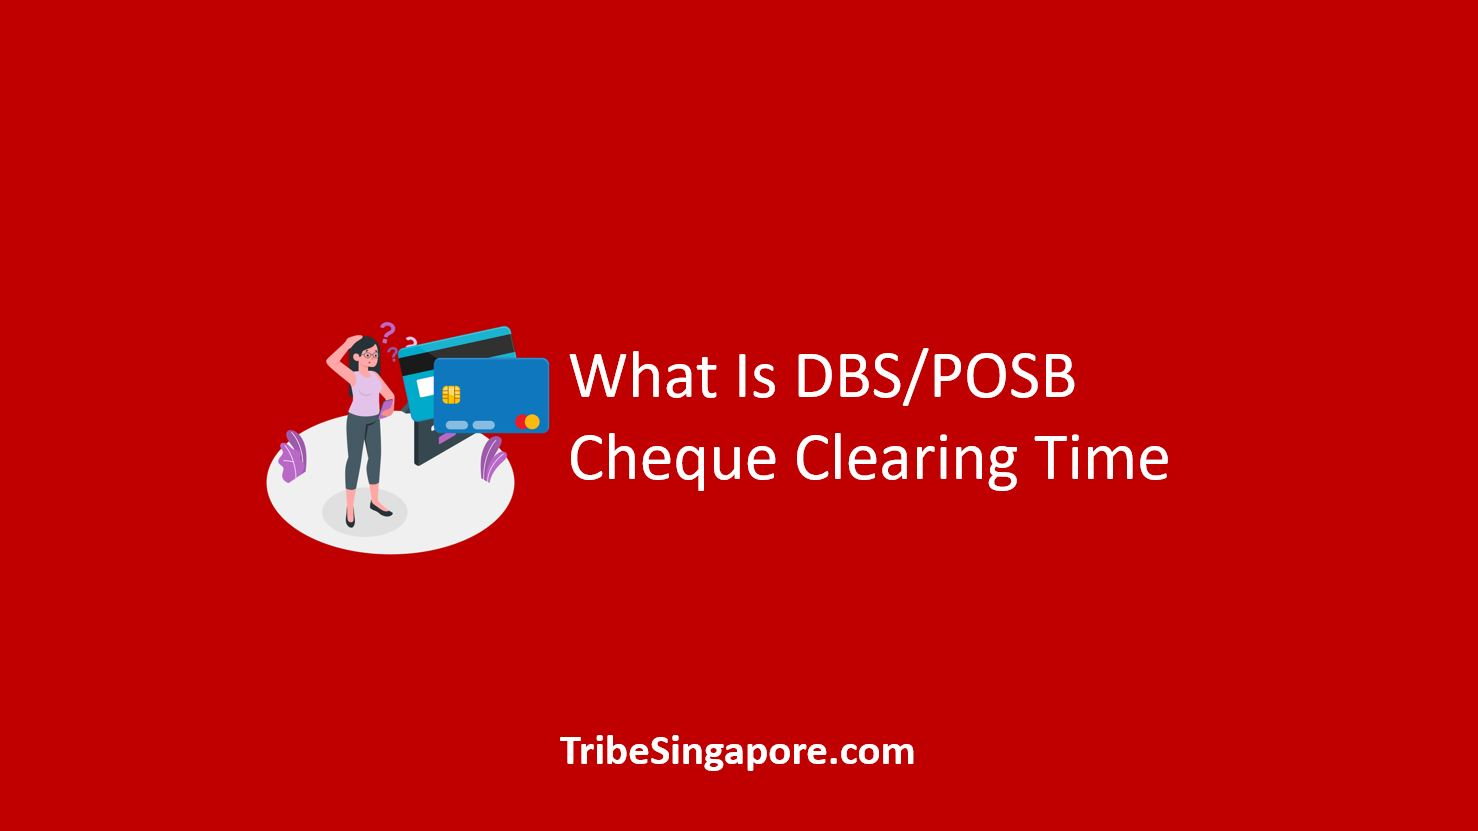 What Is DBS/POSB Cheque Clearing Time